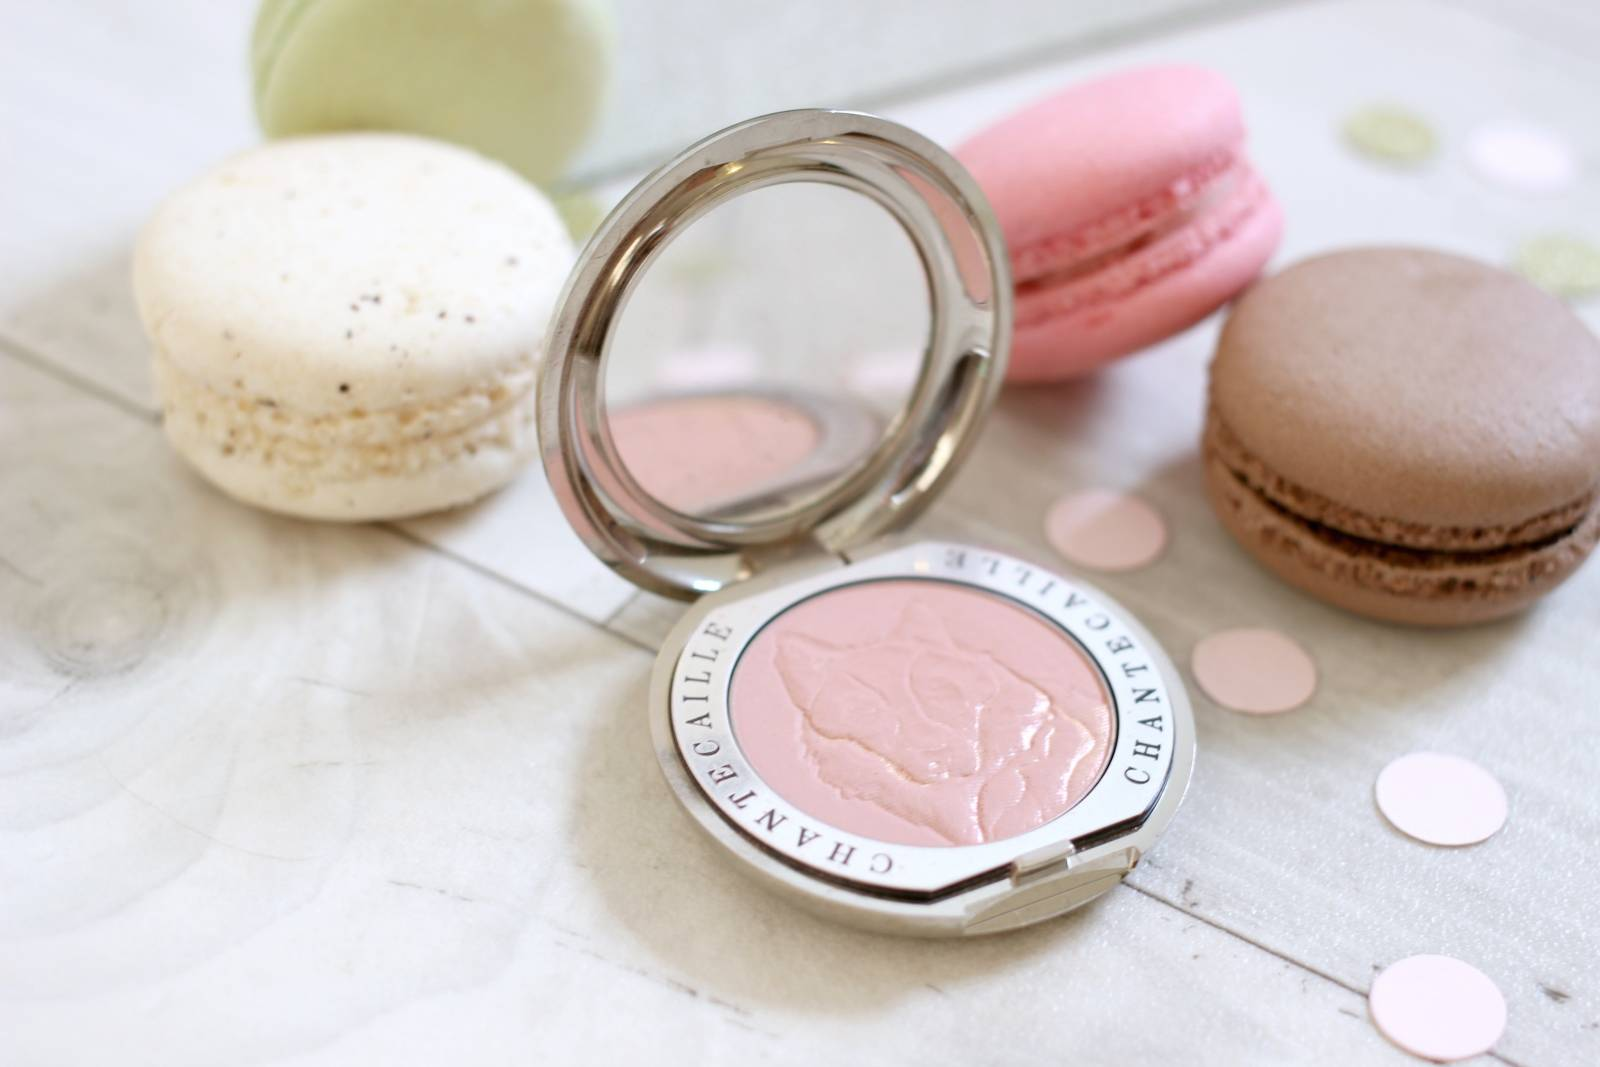 3 Beauty Trends for 2016 - Glowing Skin, Blush, Korean Skincare Chantecaille